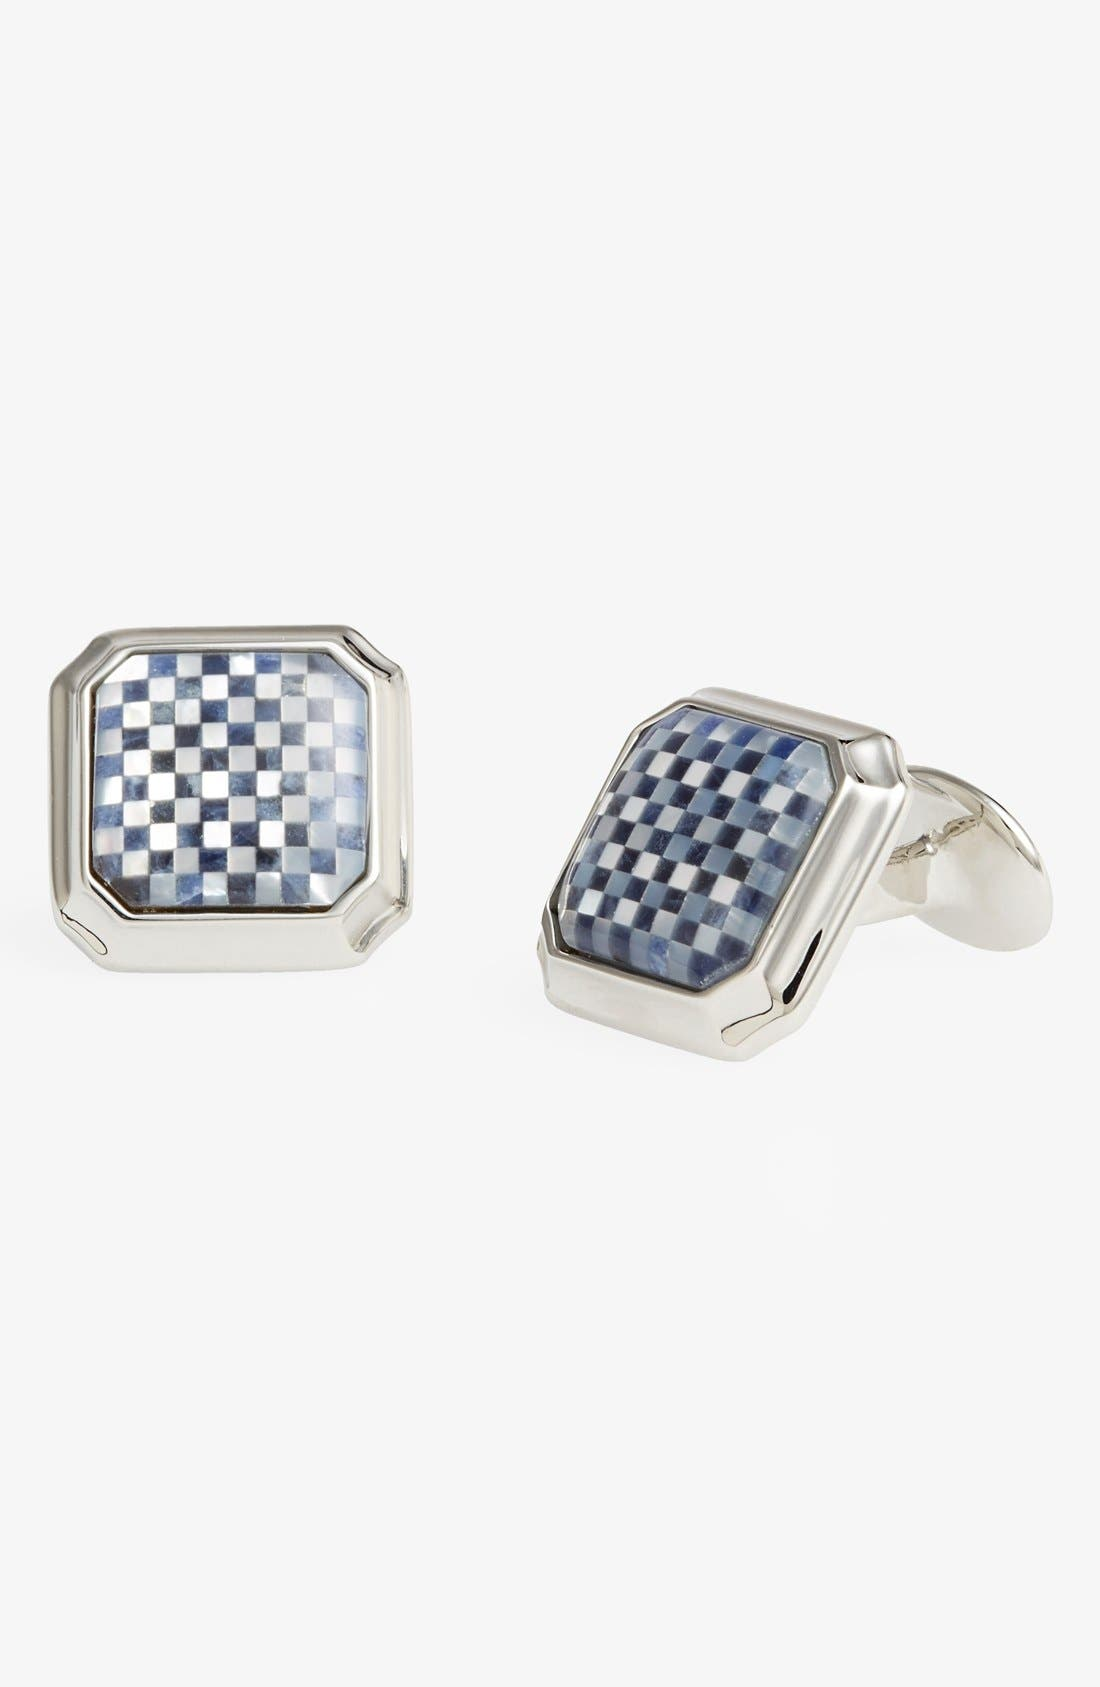 Mother of Pearl & Sodalite Cuff Links,                             Main thumbnail 1, color,                             Silver/ Black